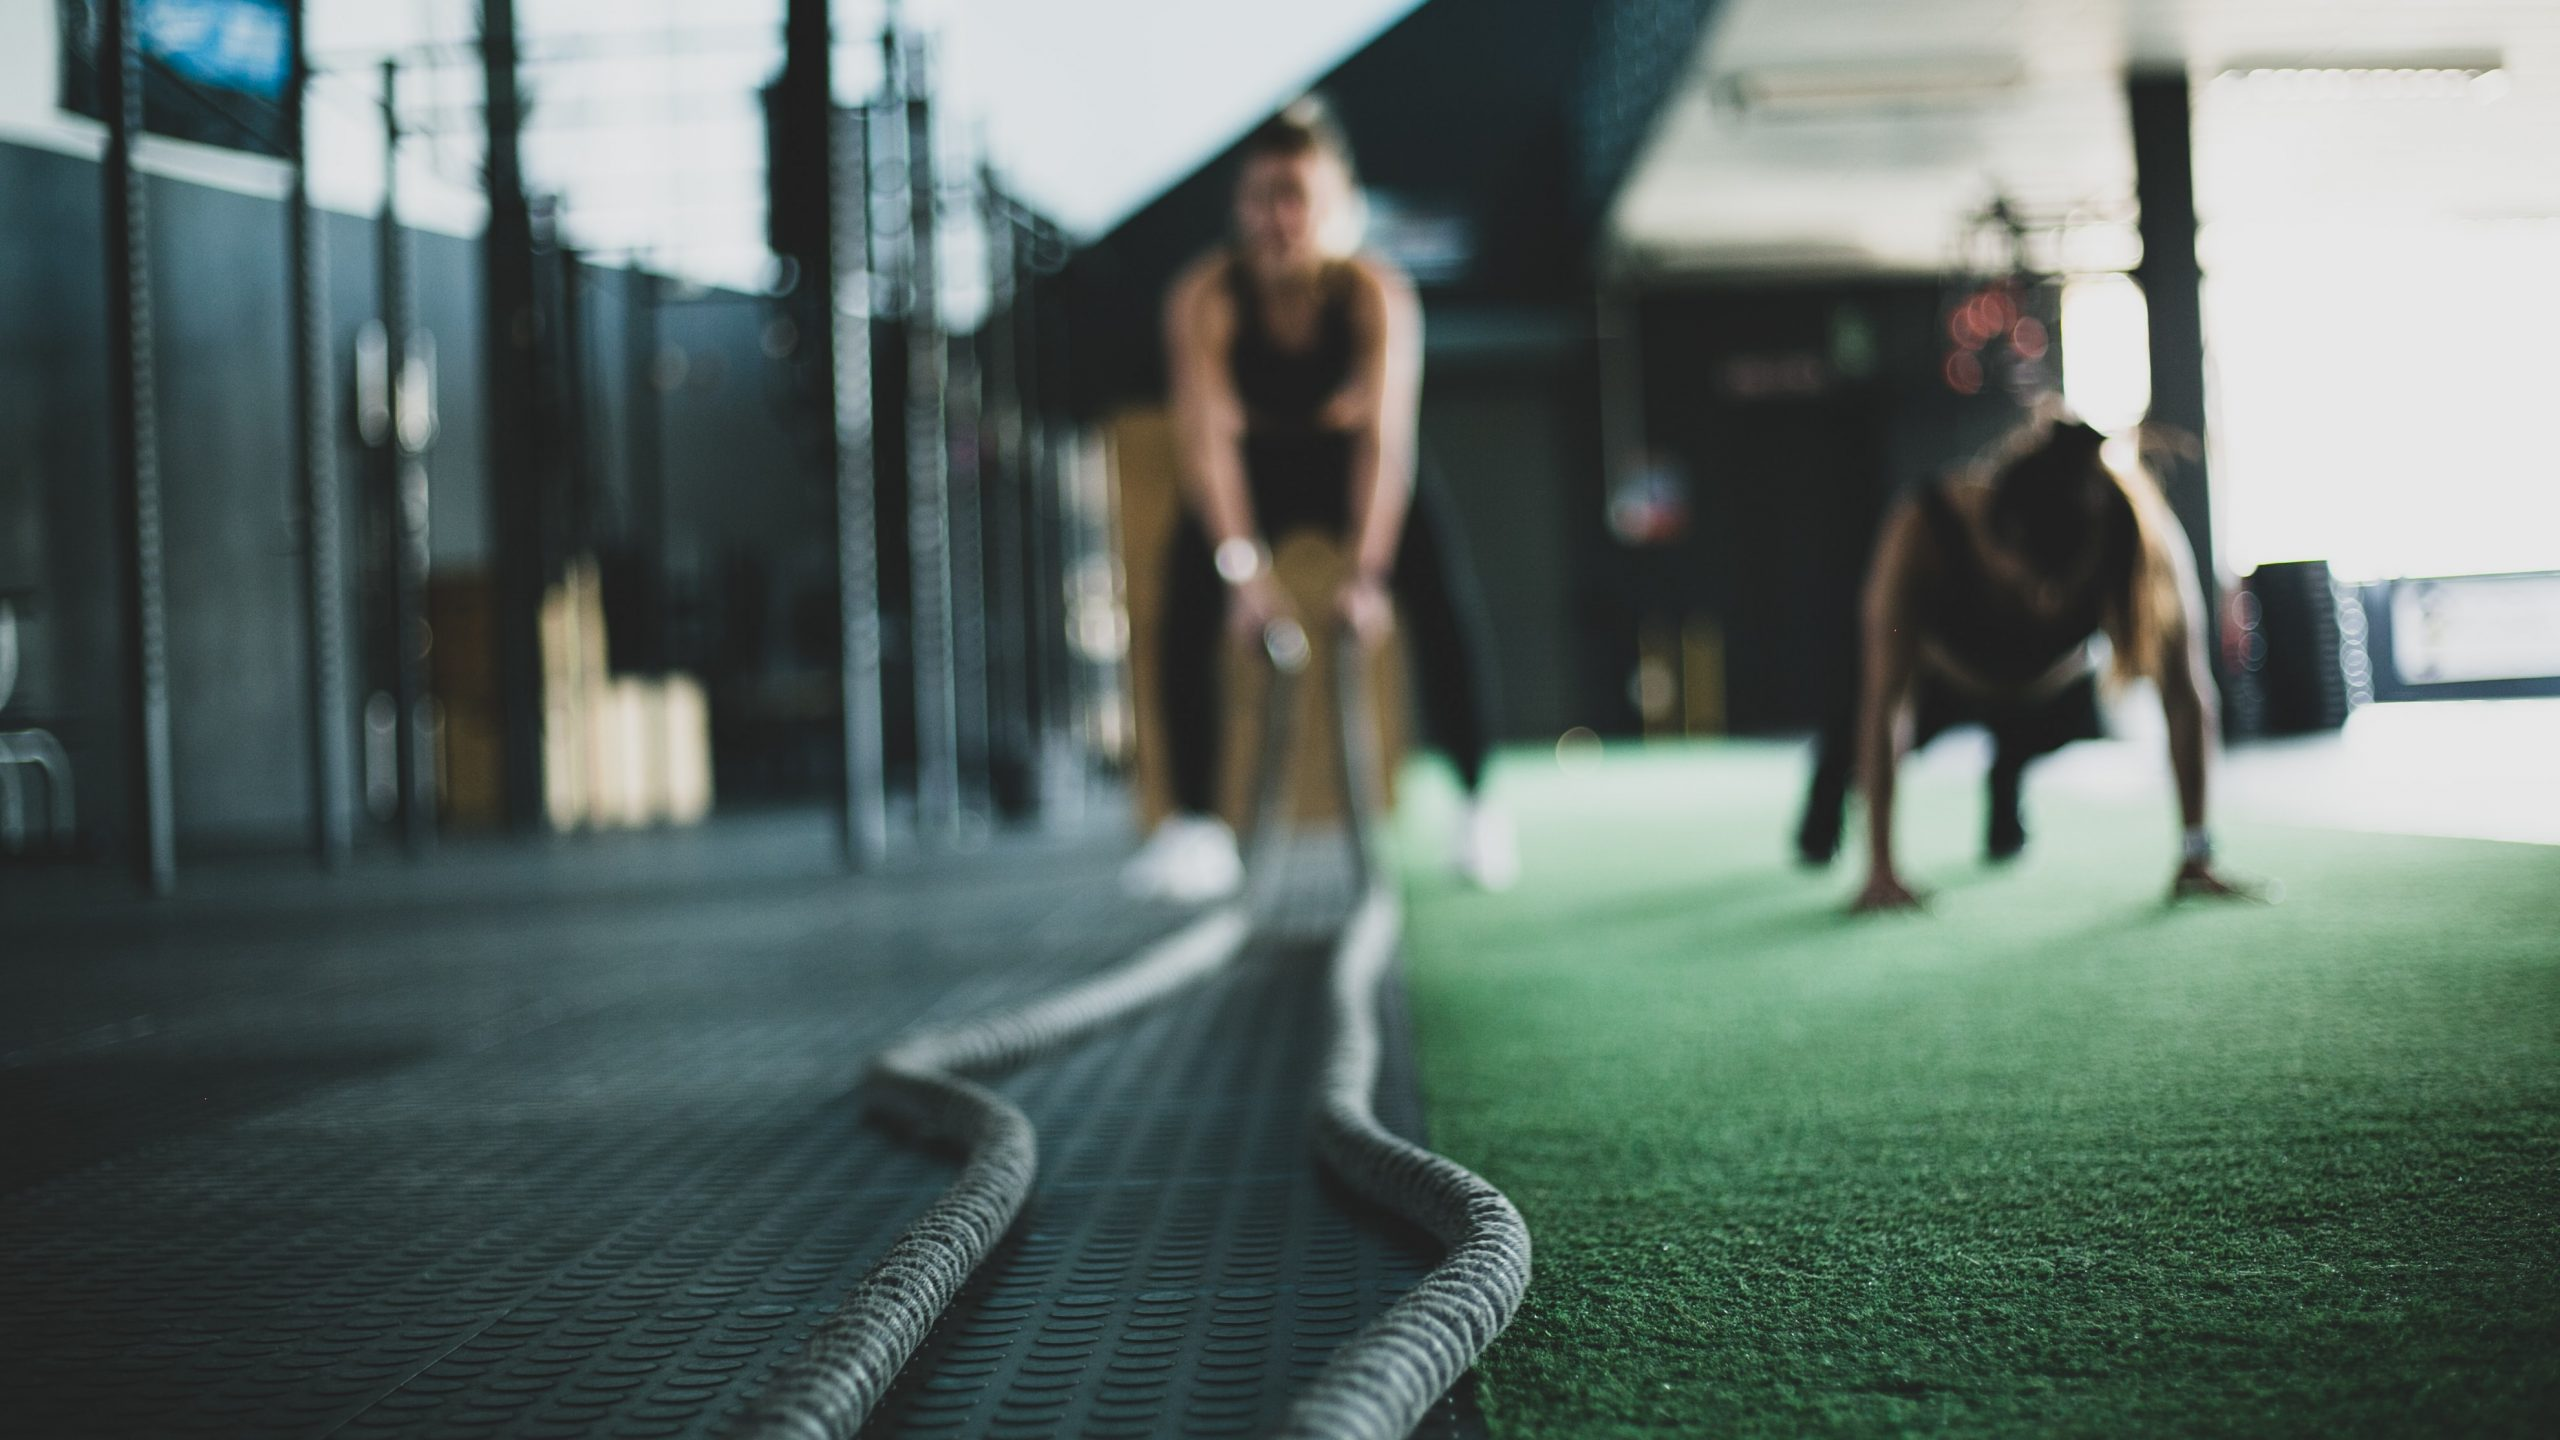 Two people exercising in a gym using ropes